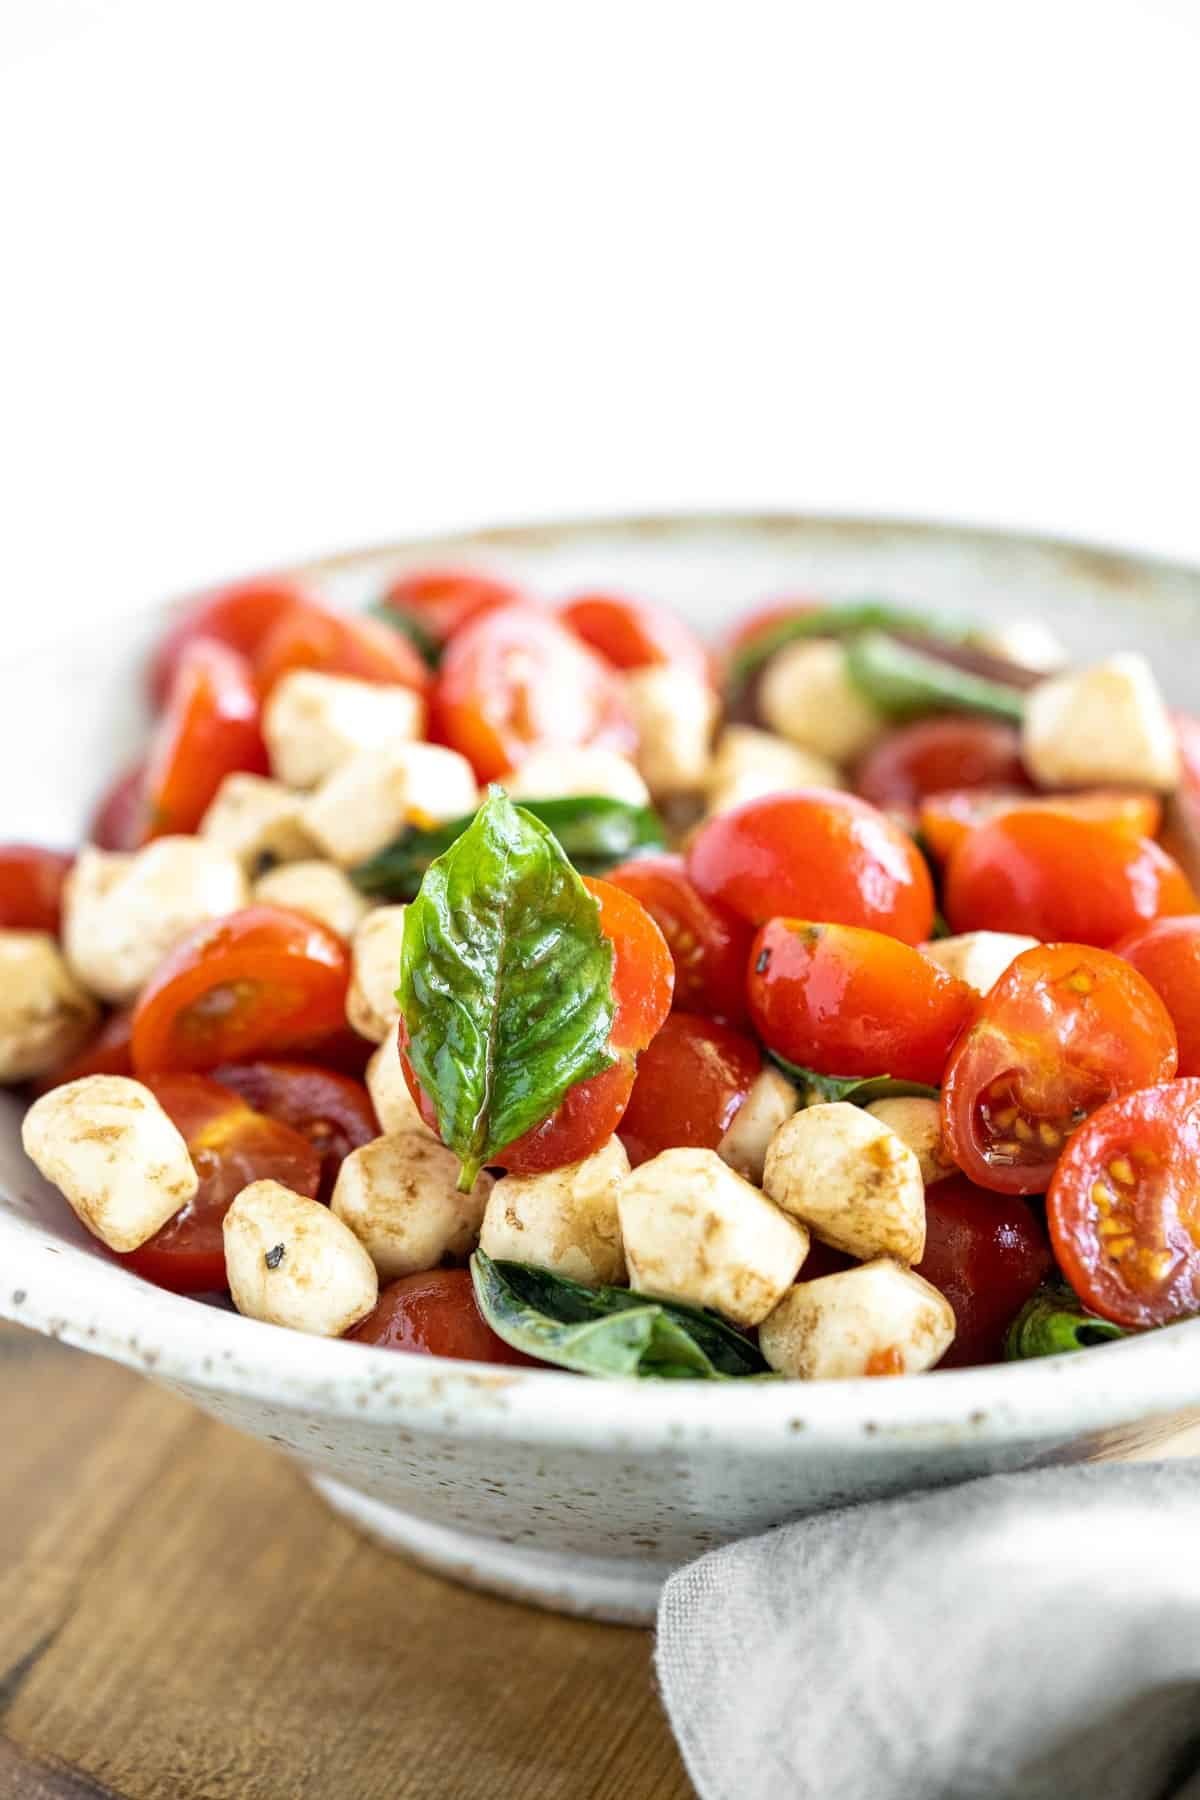 Closer view of caprese salad in a bowl